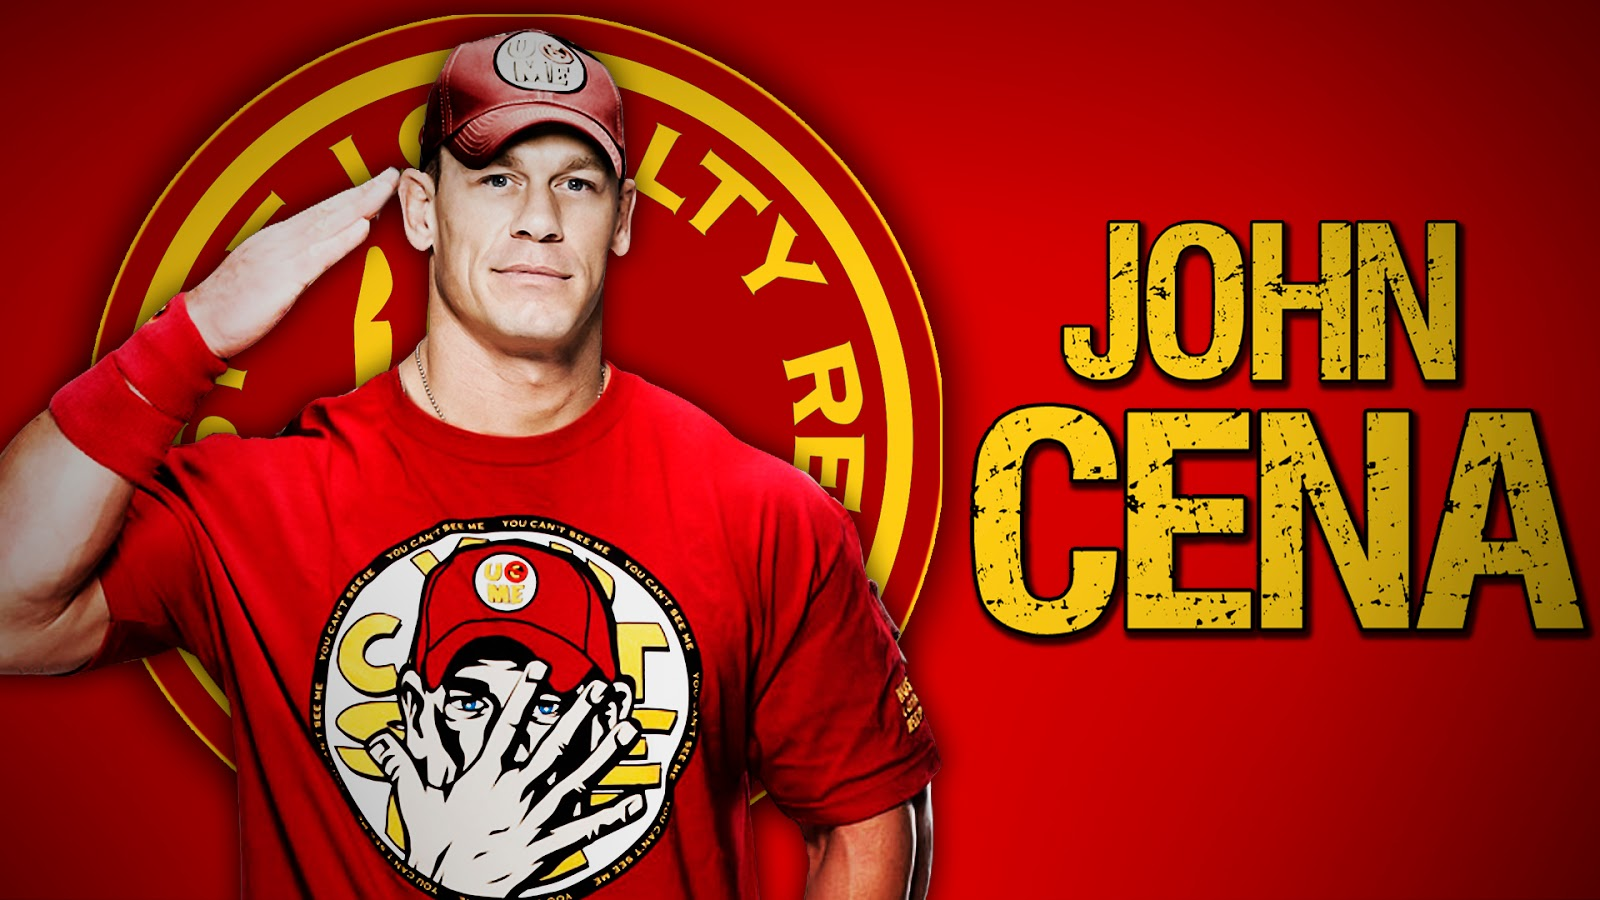 Image-for-john-cena-wrestler-rapper-actor-wwe-1920×1080-wallpaper-wp3407286